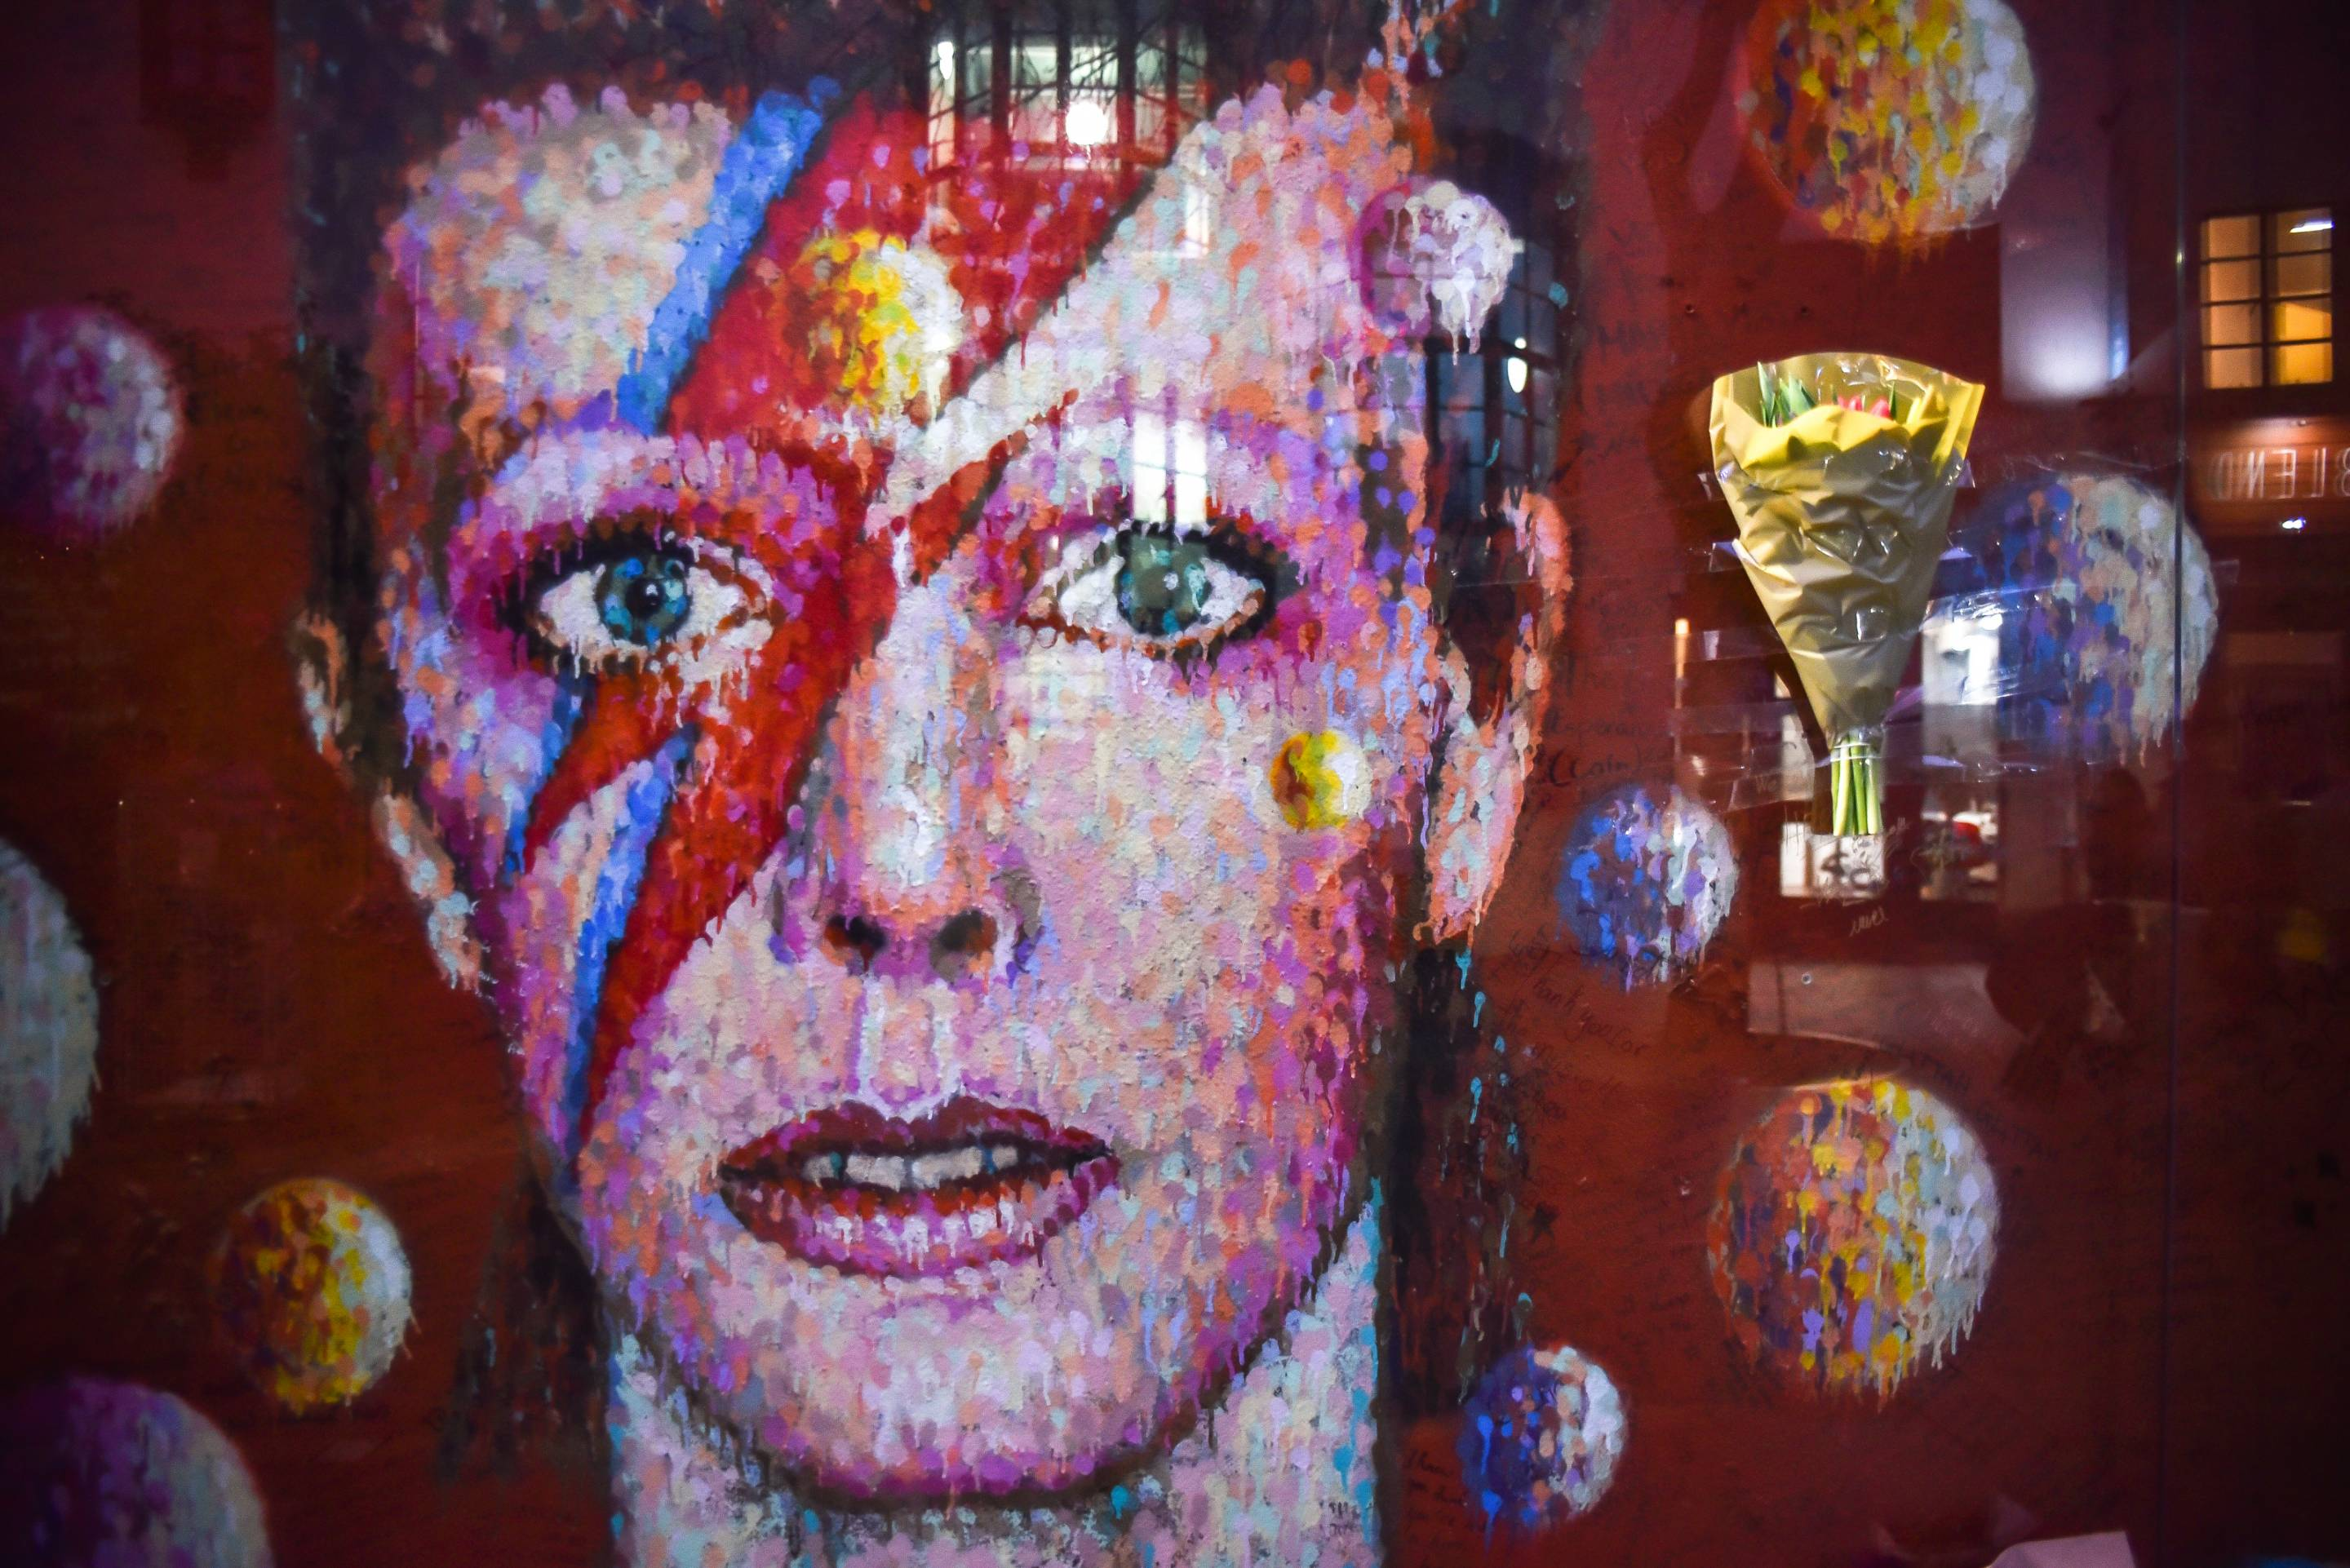 David Bowie's Death Anniversary In London